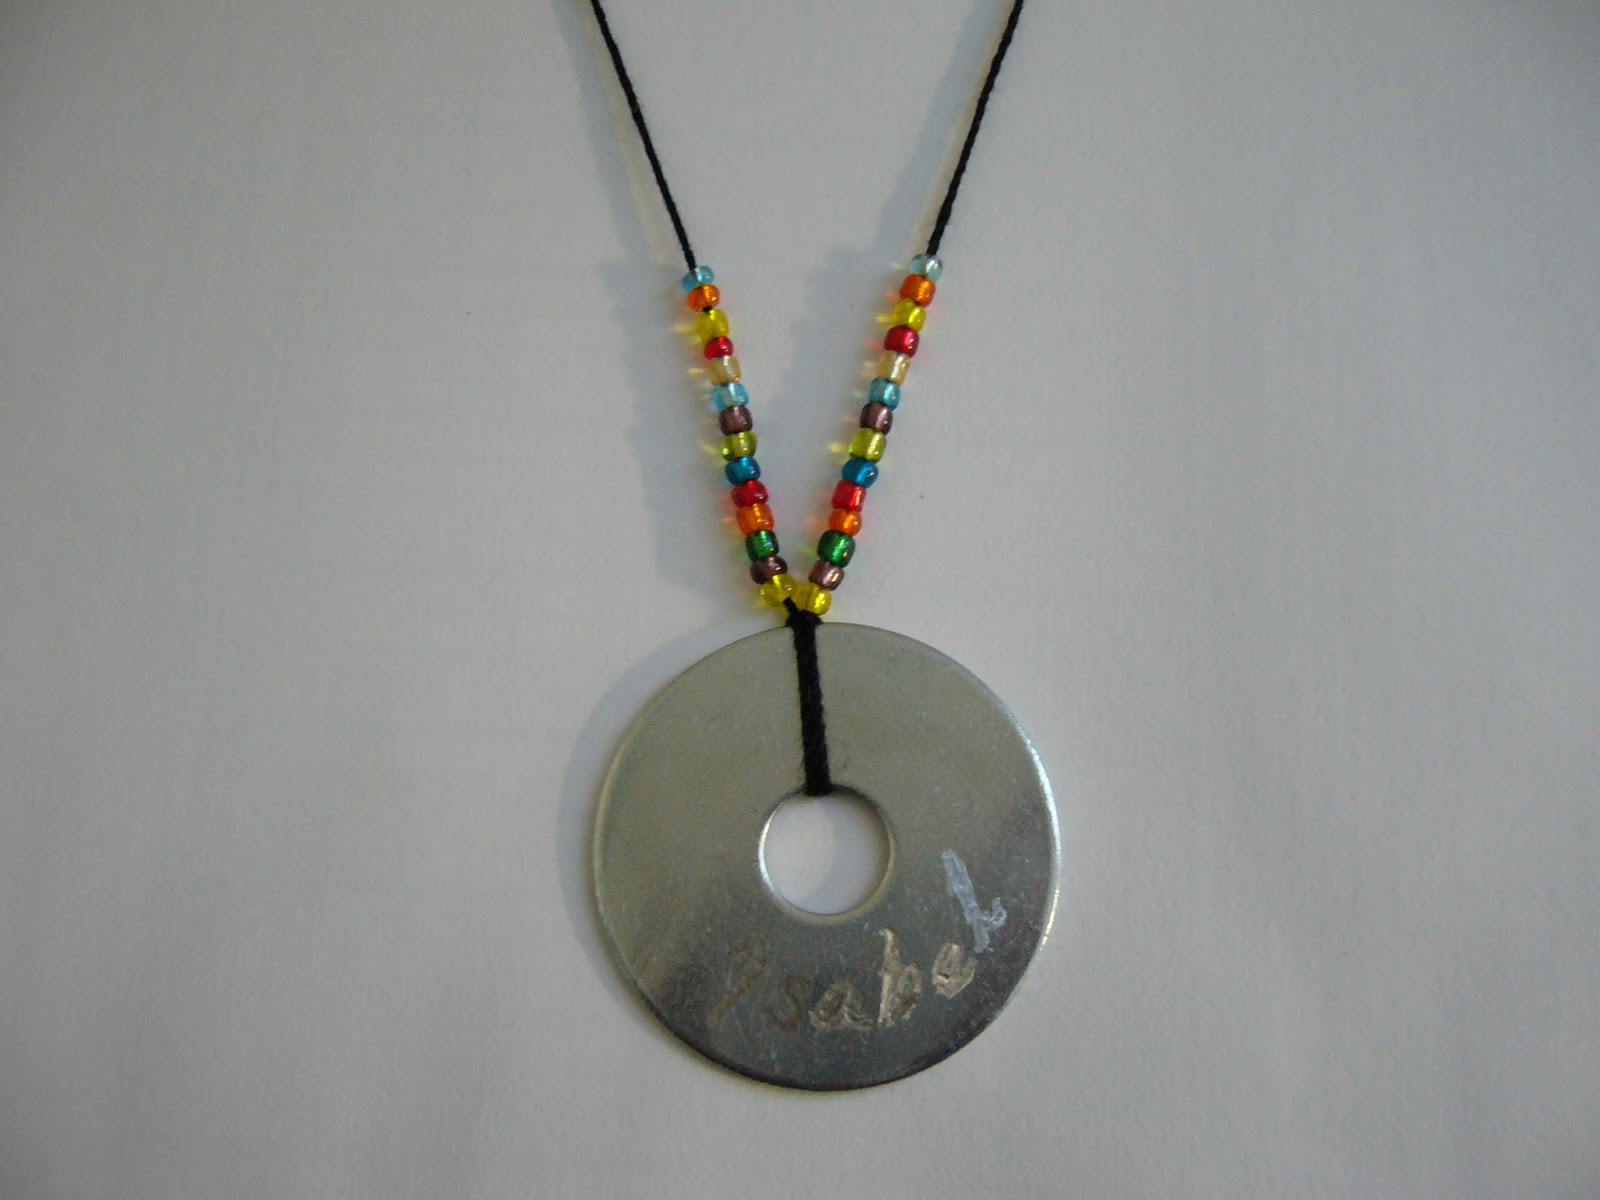 mixin it up with daperfectmix engraved washer necklace